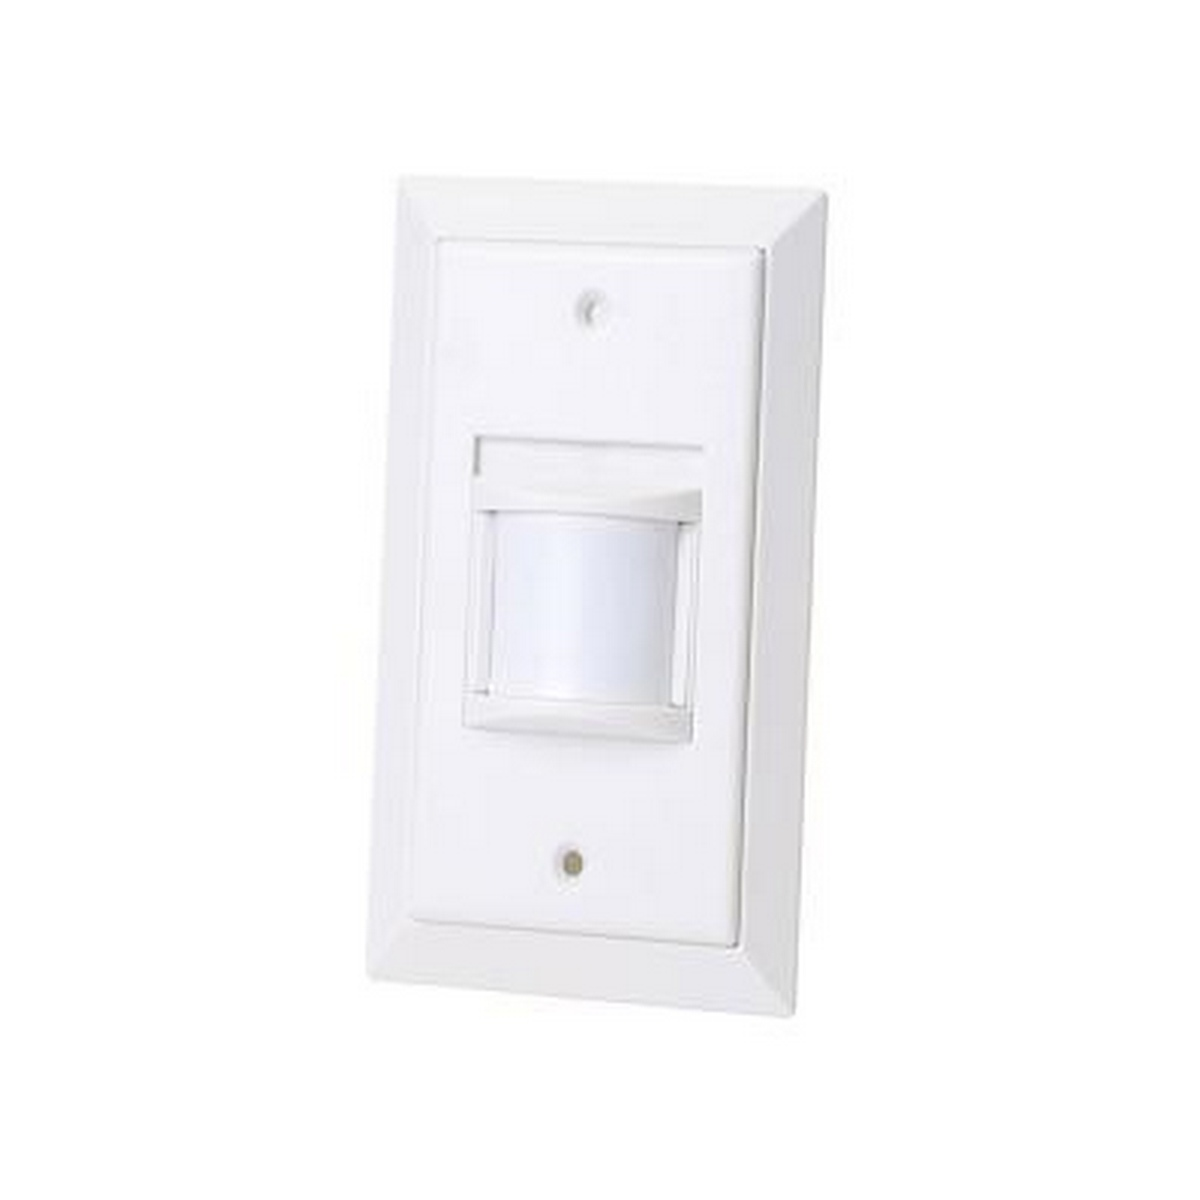 Visonic MR4000 Flush mount PIR